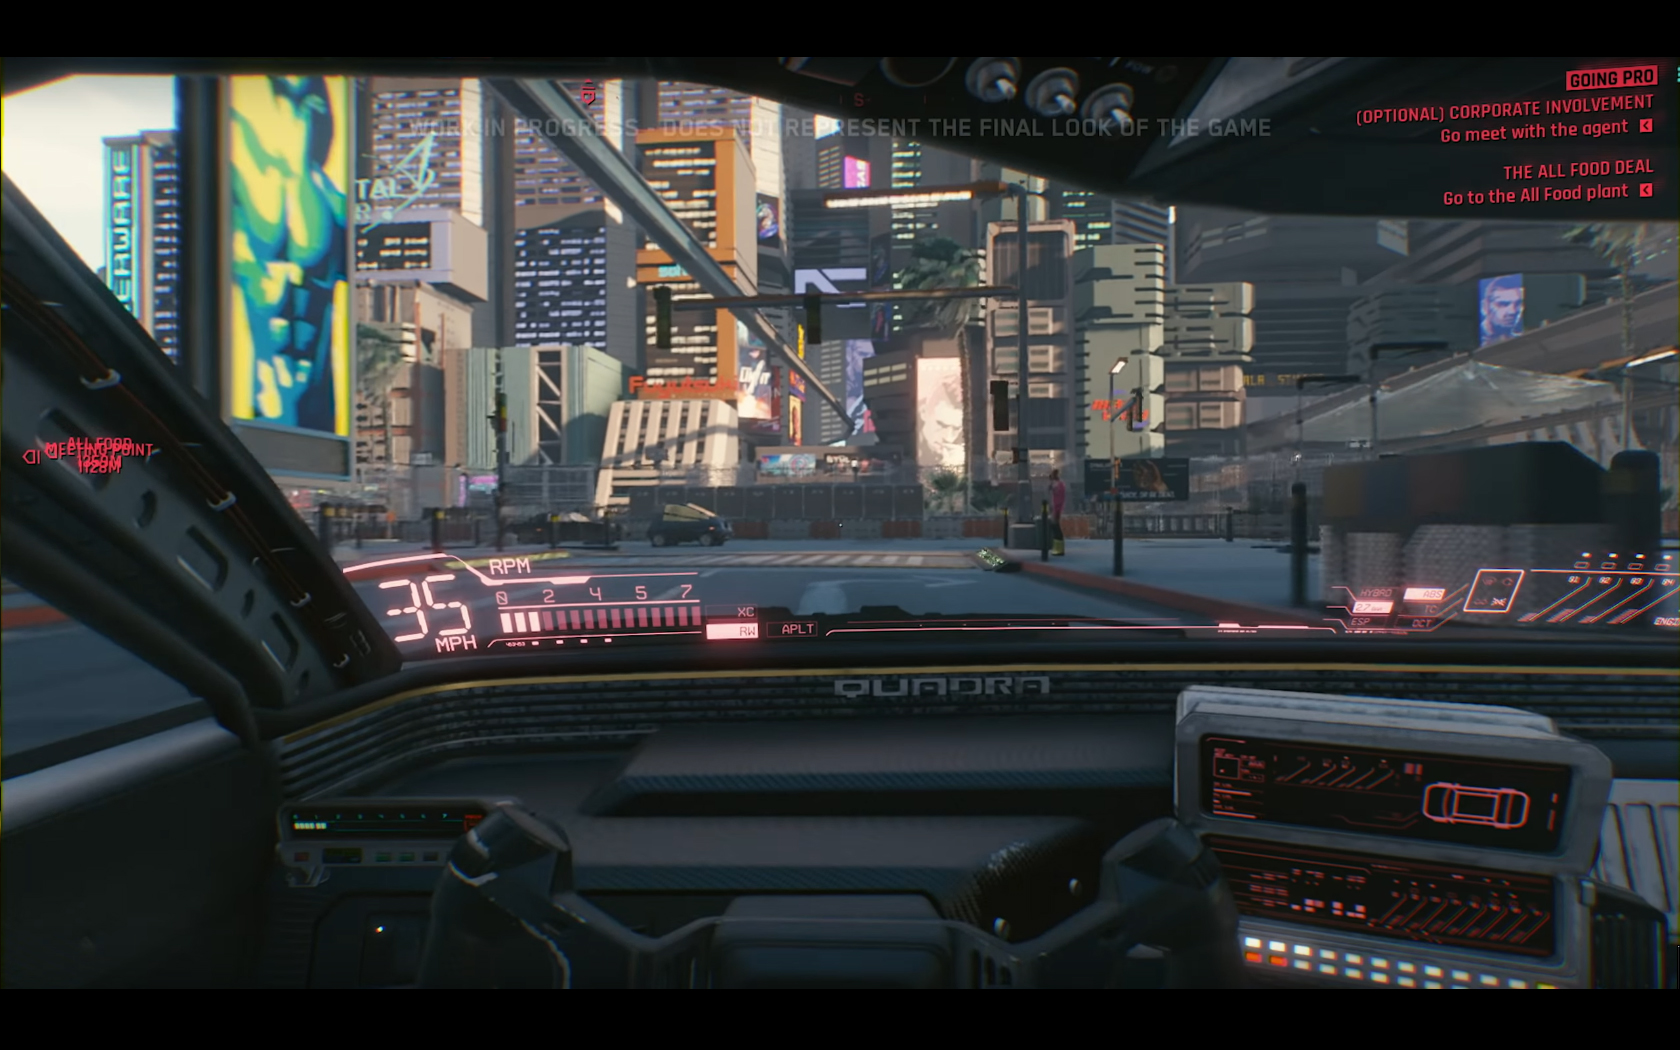 CD Projekt Red - Cyberpunk 2077 - video reveal gameplay - 2018 - screen - sports car QUADRA - onboard road city